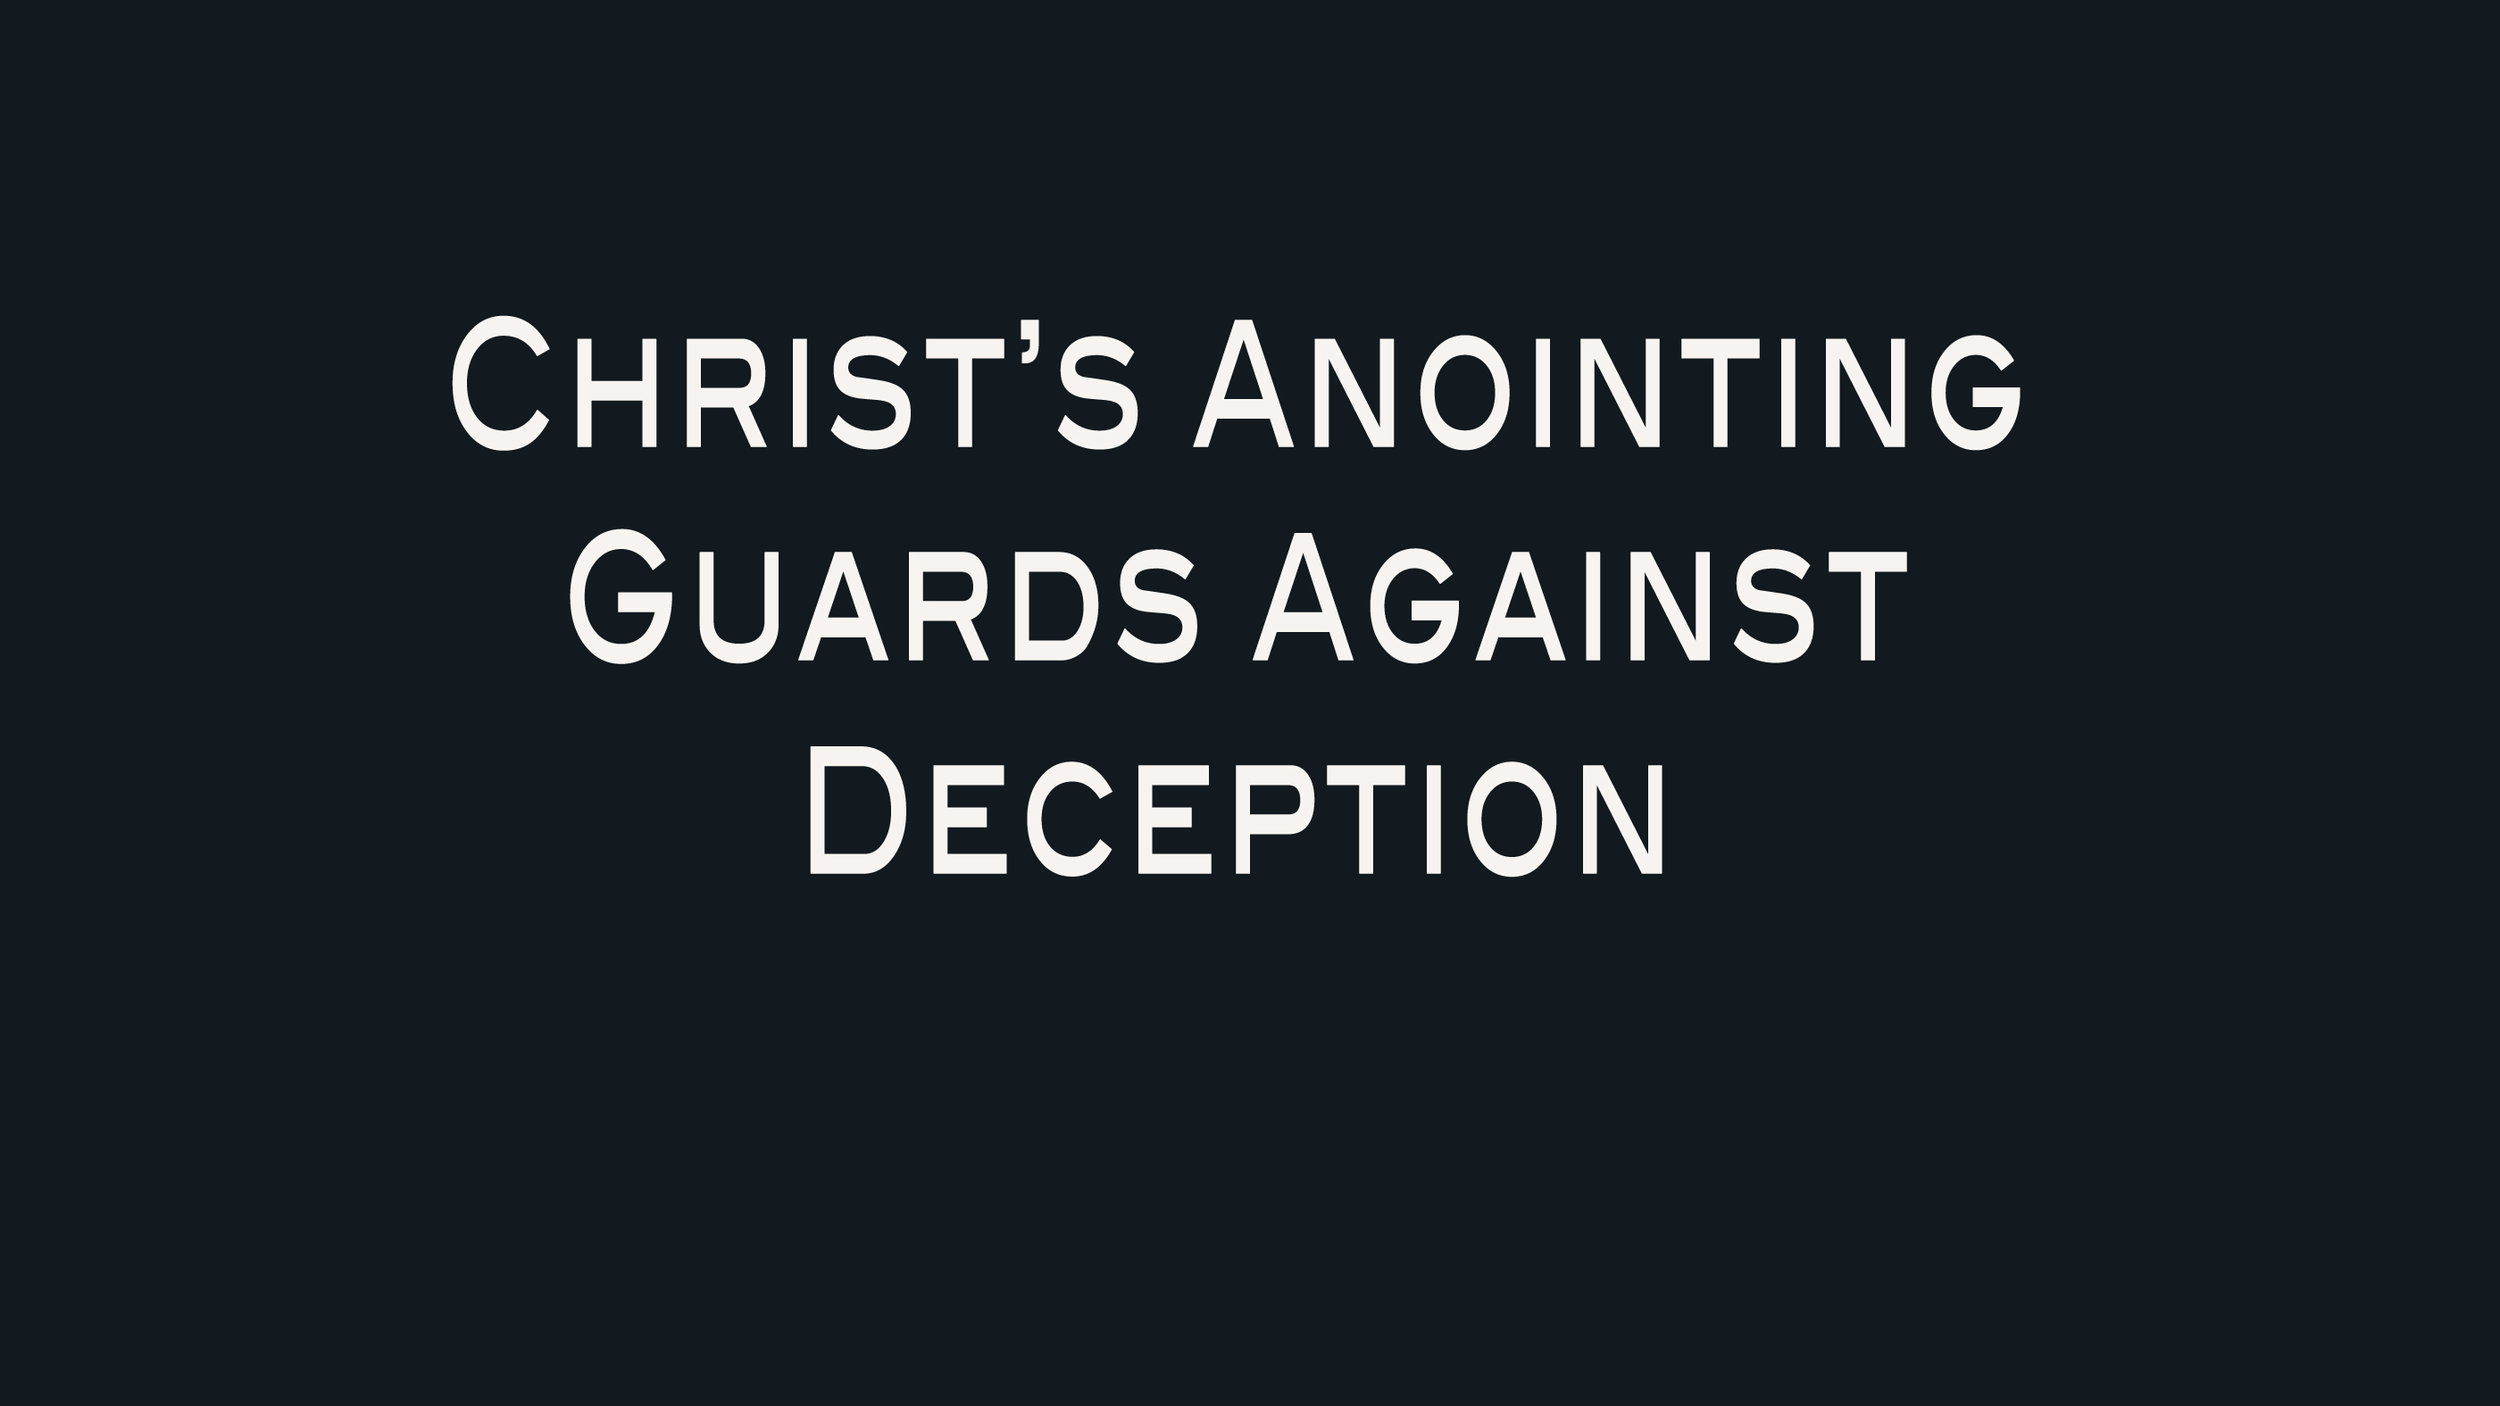 Christ's Anointing Guards Aganist Deception.jpg